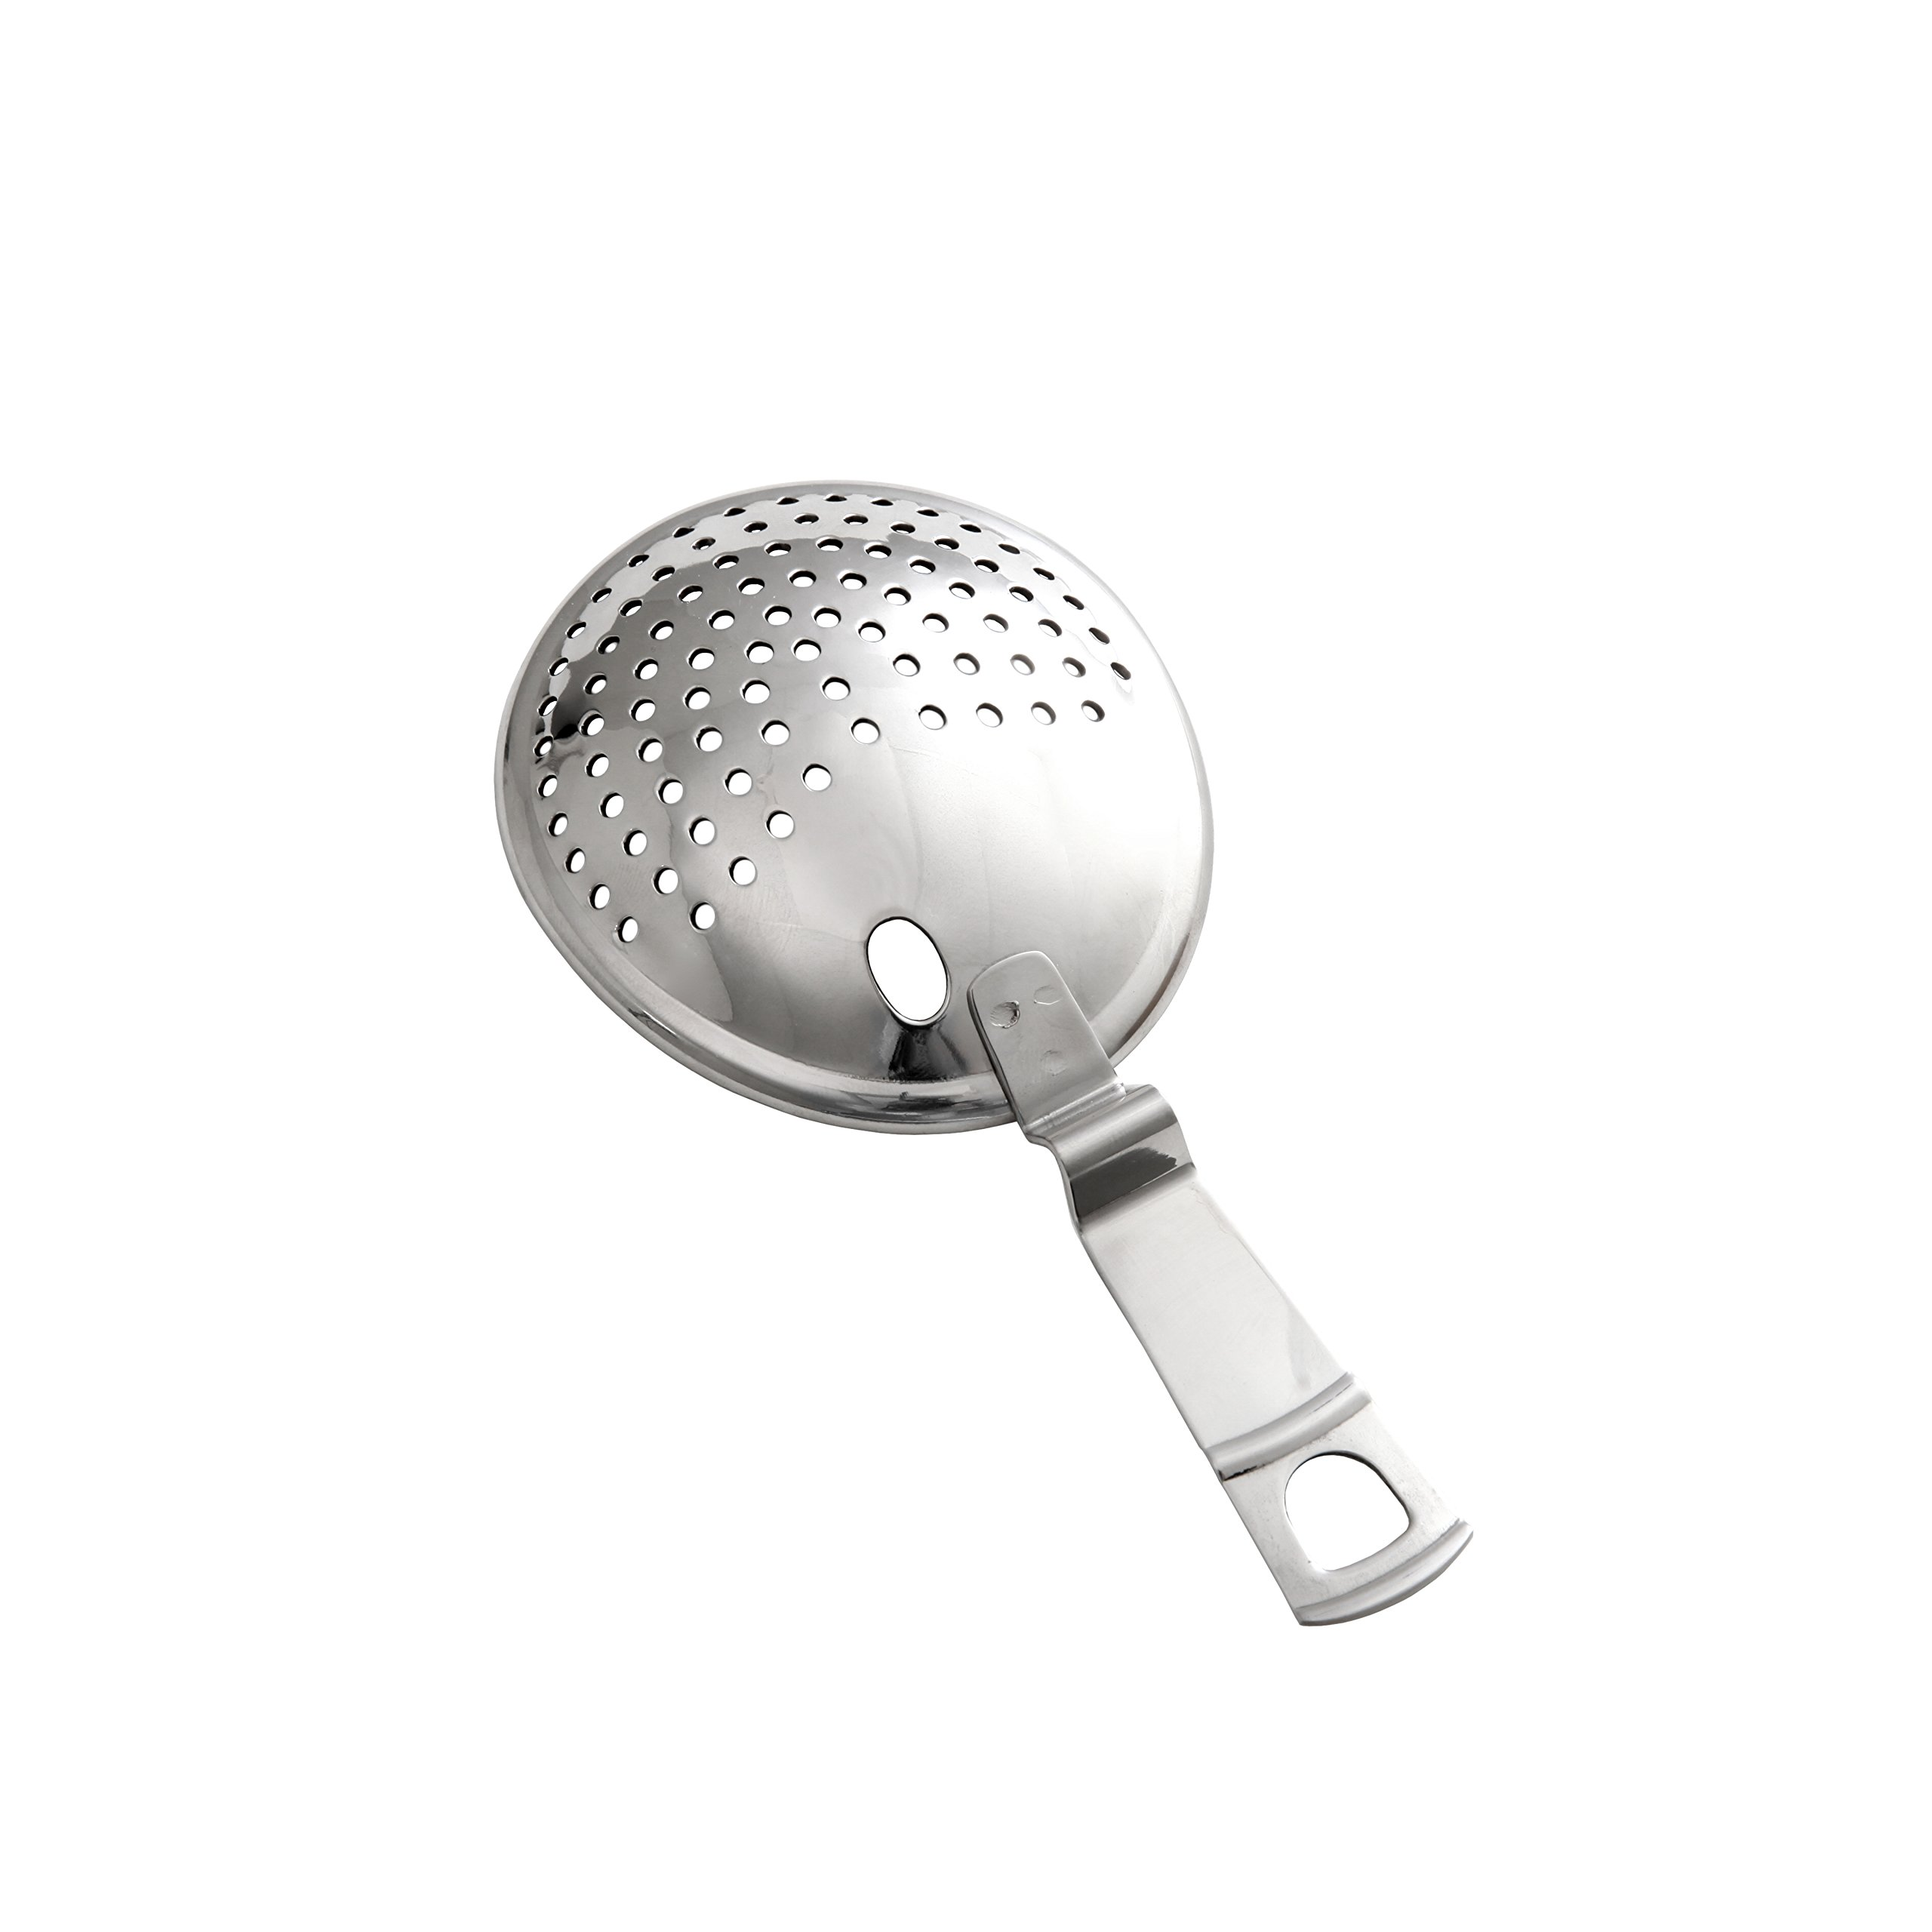 Crafthouse by Fortessa Professional Metal Barware/Bar Tools by Charles Joly, 6'' Stainless Steel Julep/Cocktail Strainer by Crafthouse by Fortessa